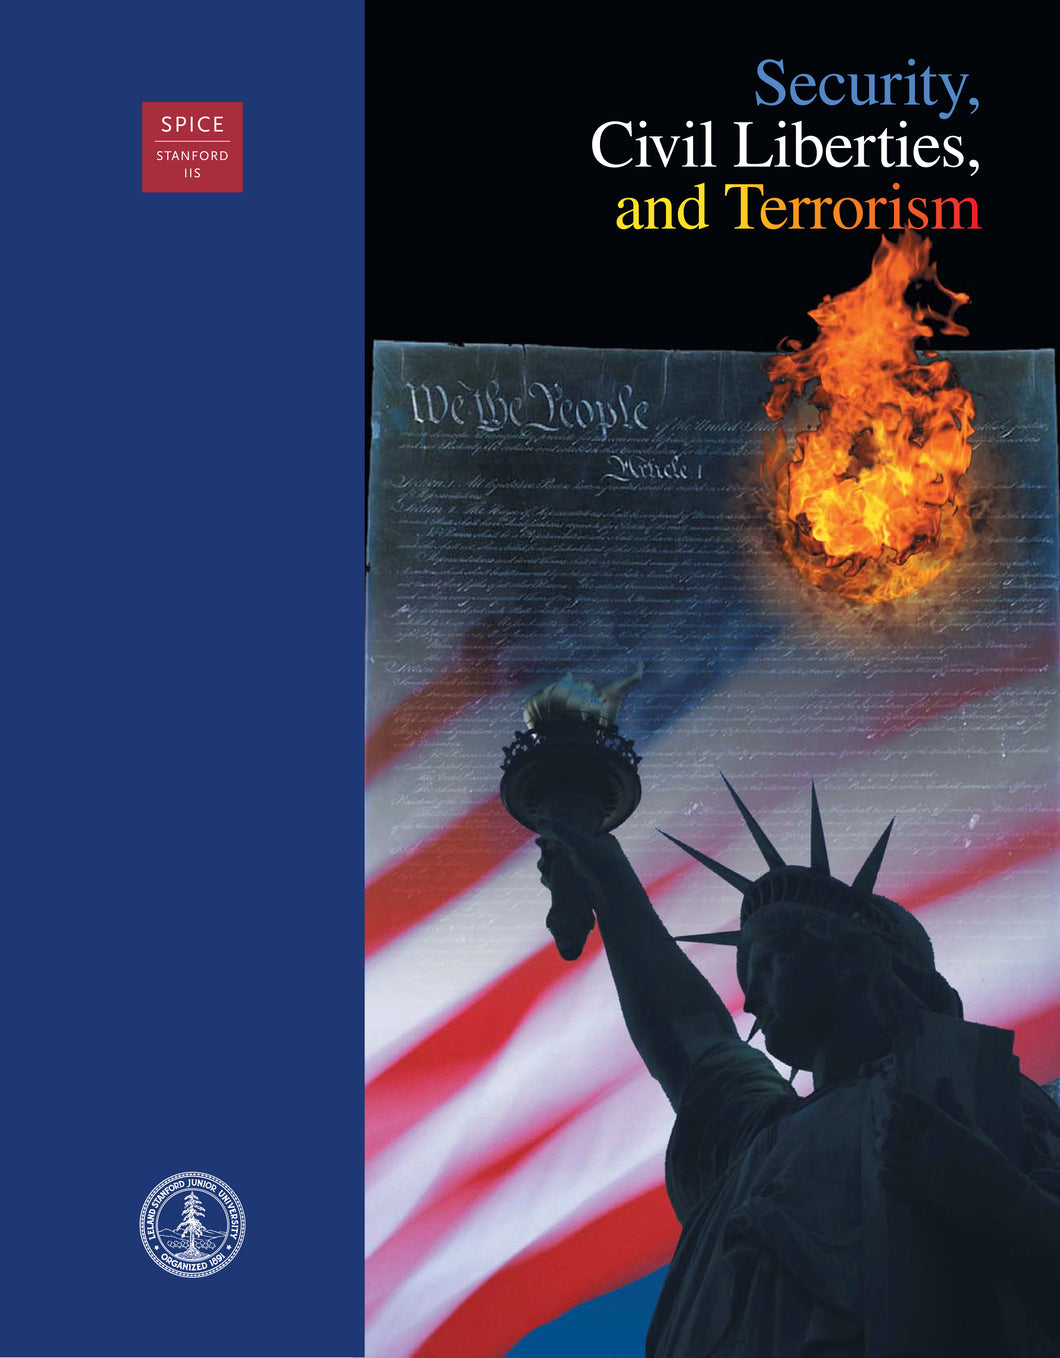 Security, Civil Liberties, and Terrorism